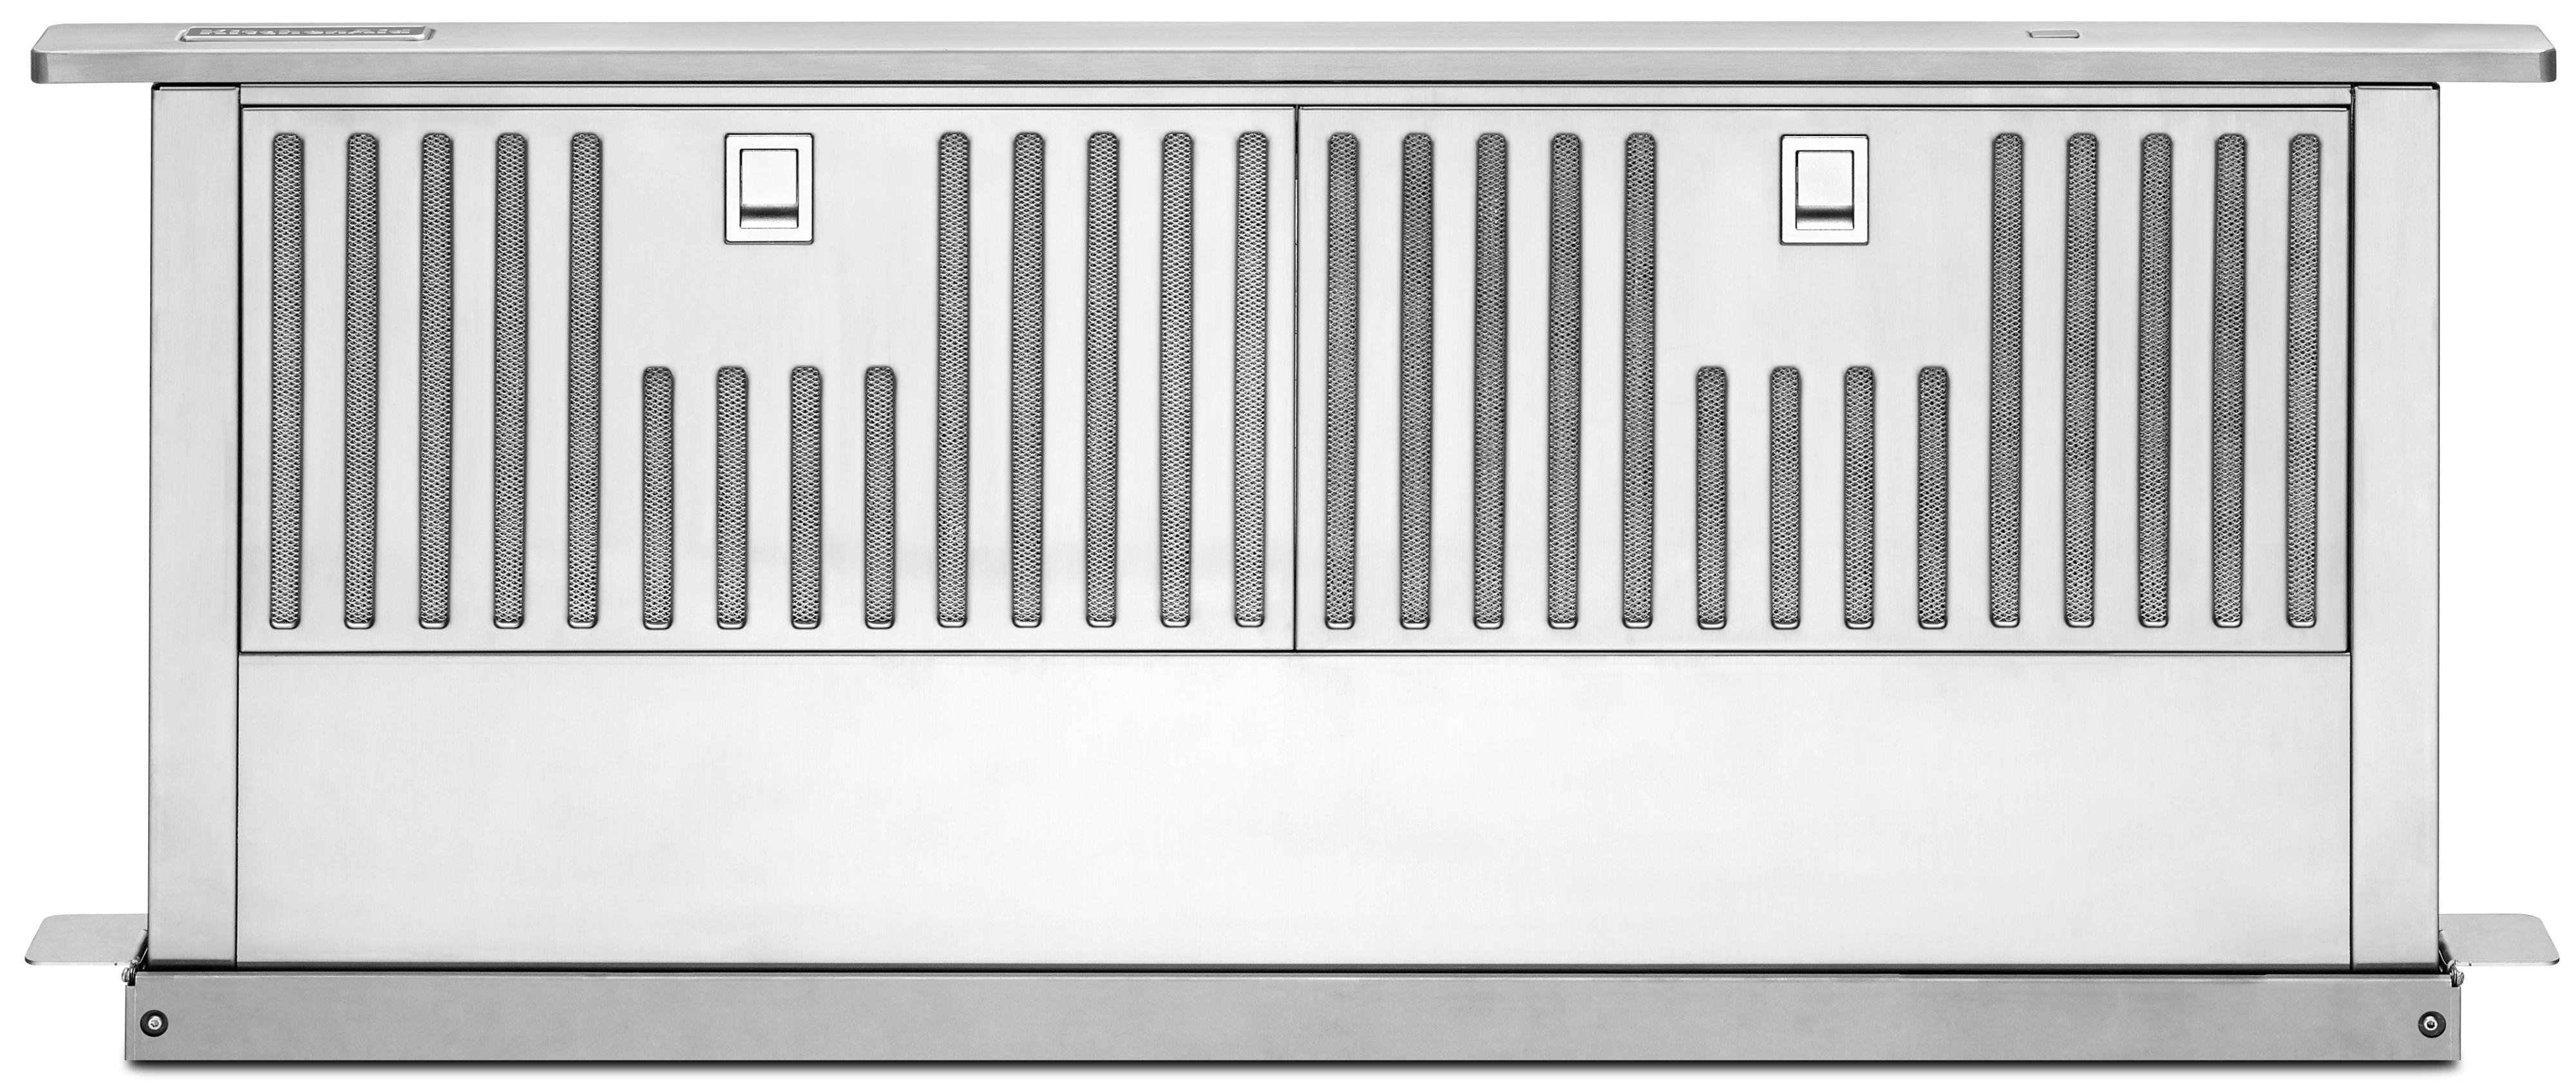 """Range Hoods 36"""" Downdraft System by KitchenAid at Furniture and ApplianceMart"""